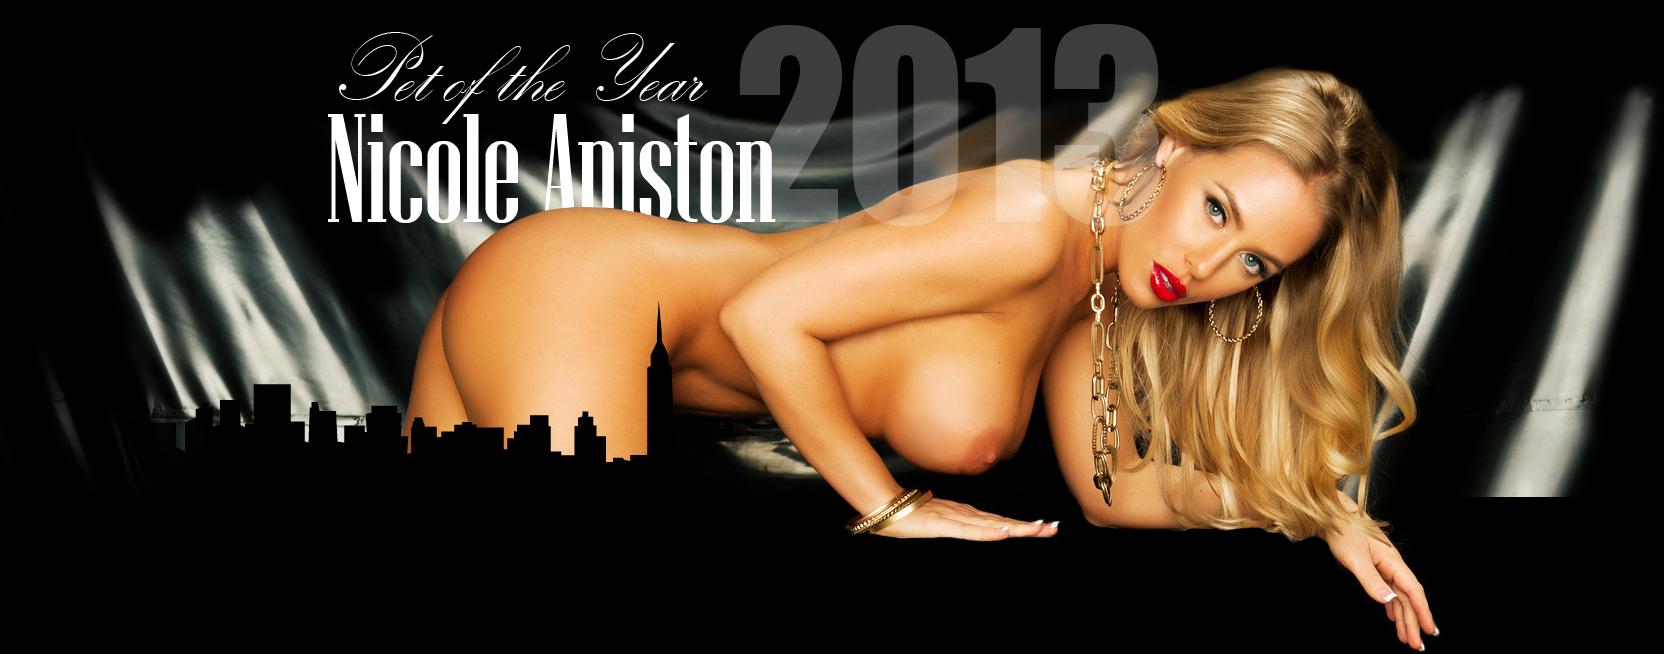 Wallpaper of Penthouse Pet of the year Nicole Aniston zilla over the city with big boobs